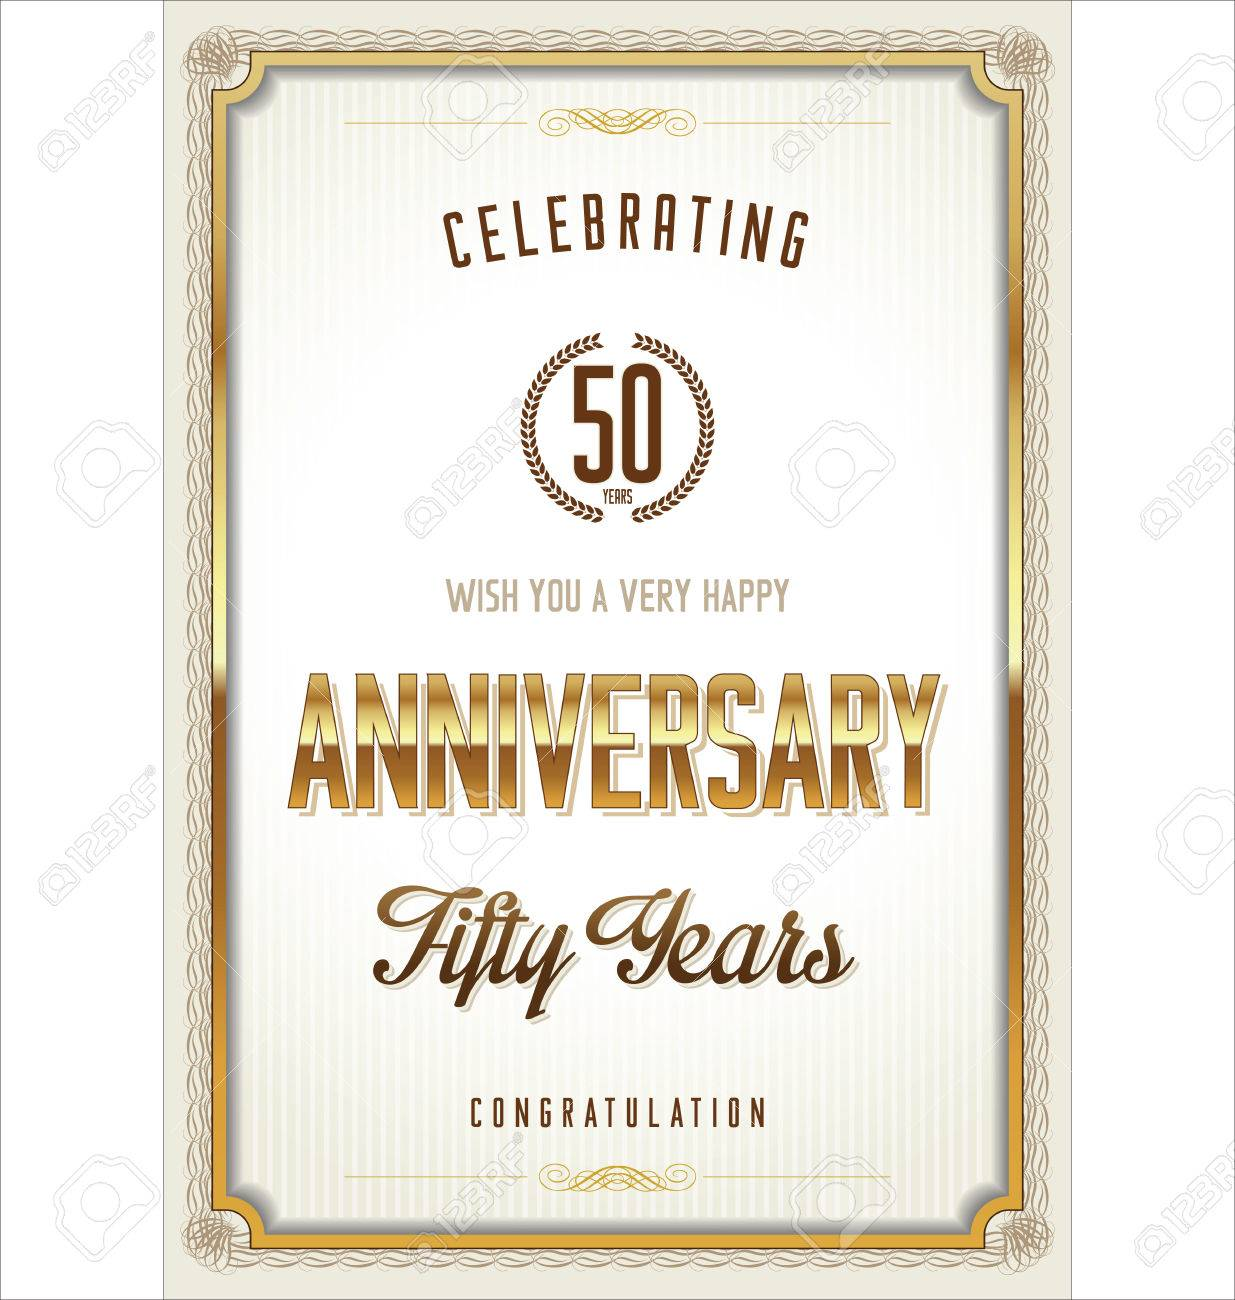 Lovely anniversary certificate template gallery entry level anniversary certificate template royalty free cliparts vectors 1betcityfo Image collections